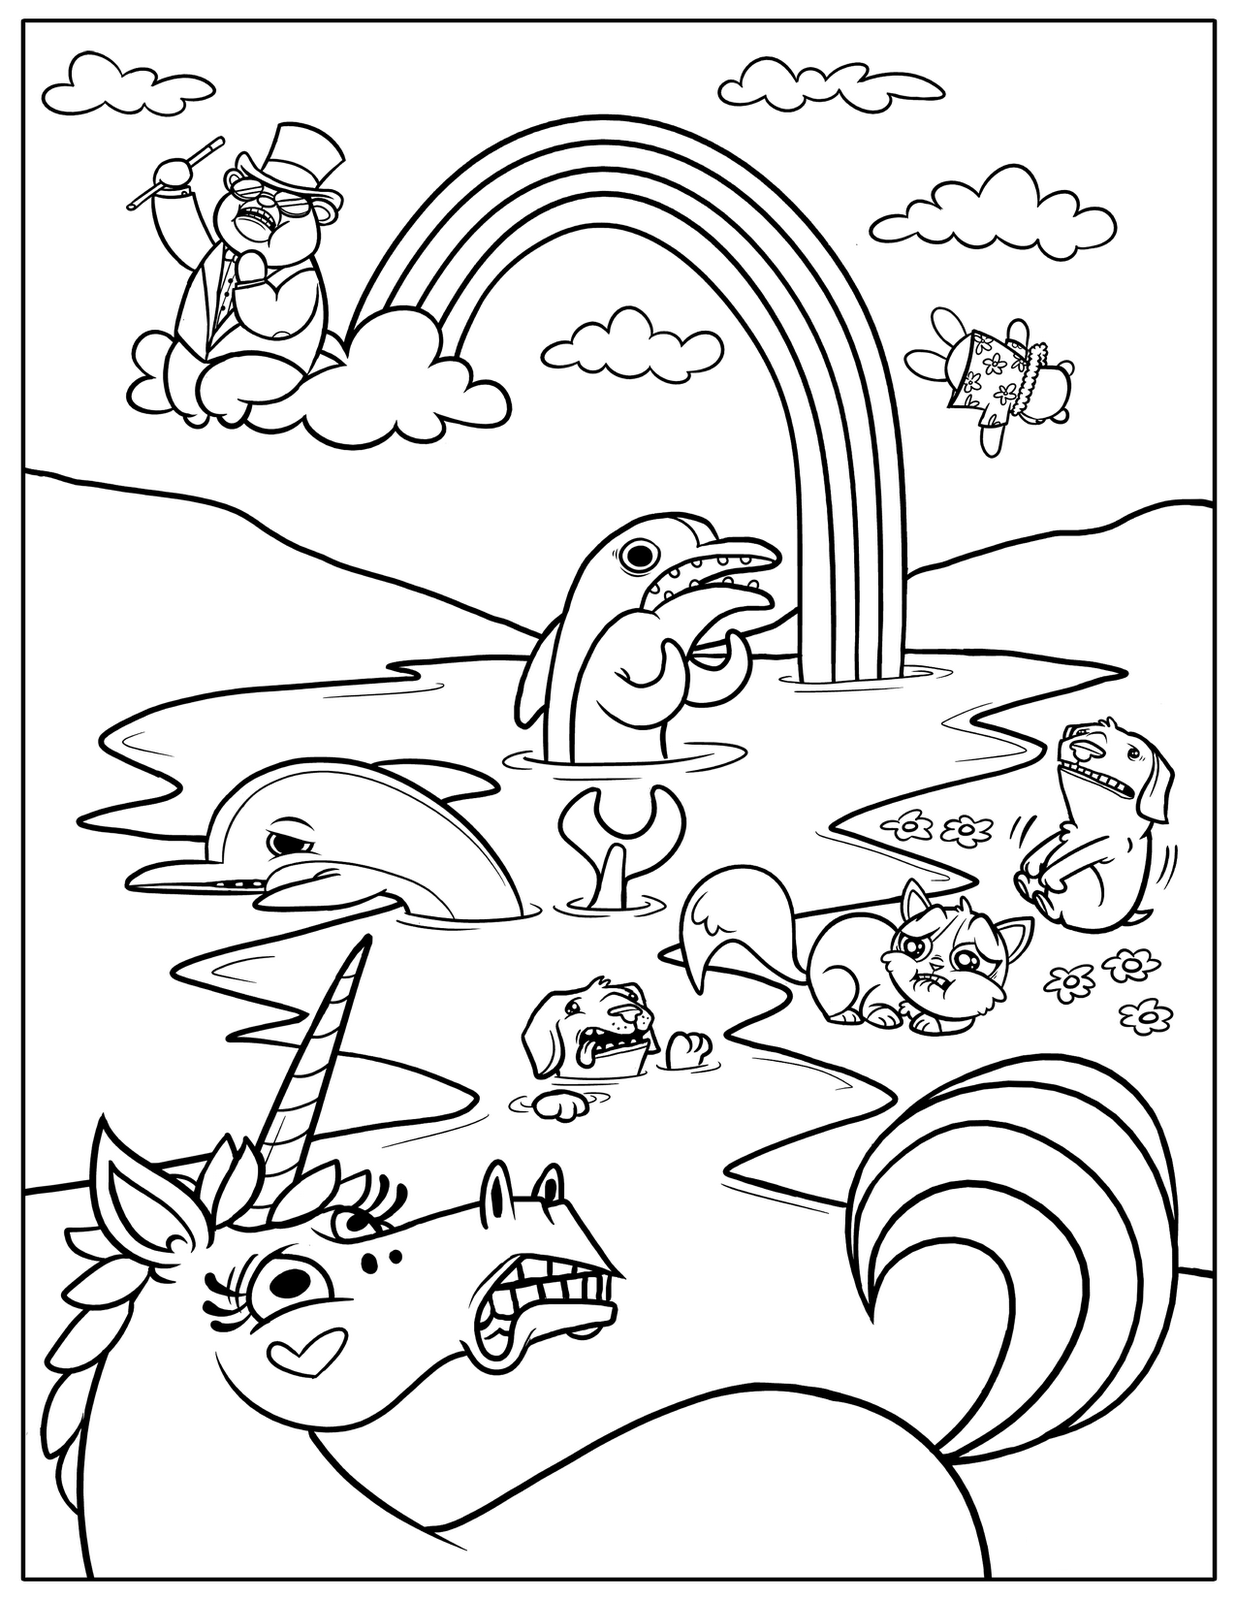 rainbow coloring pages kids printable - Drawings For Kids To Color